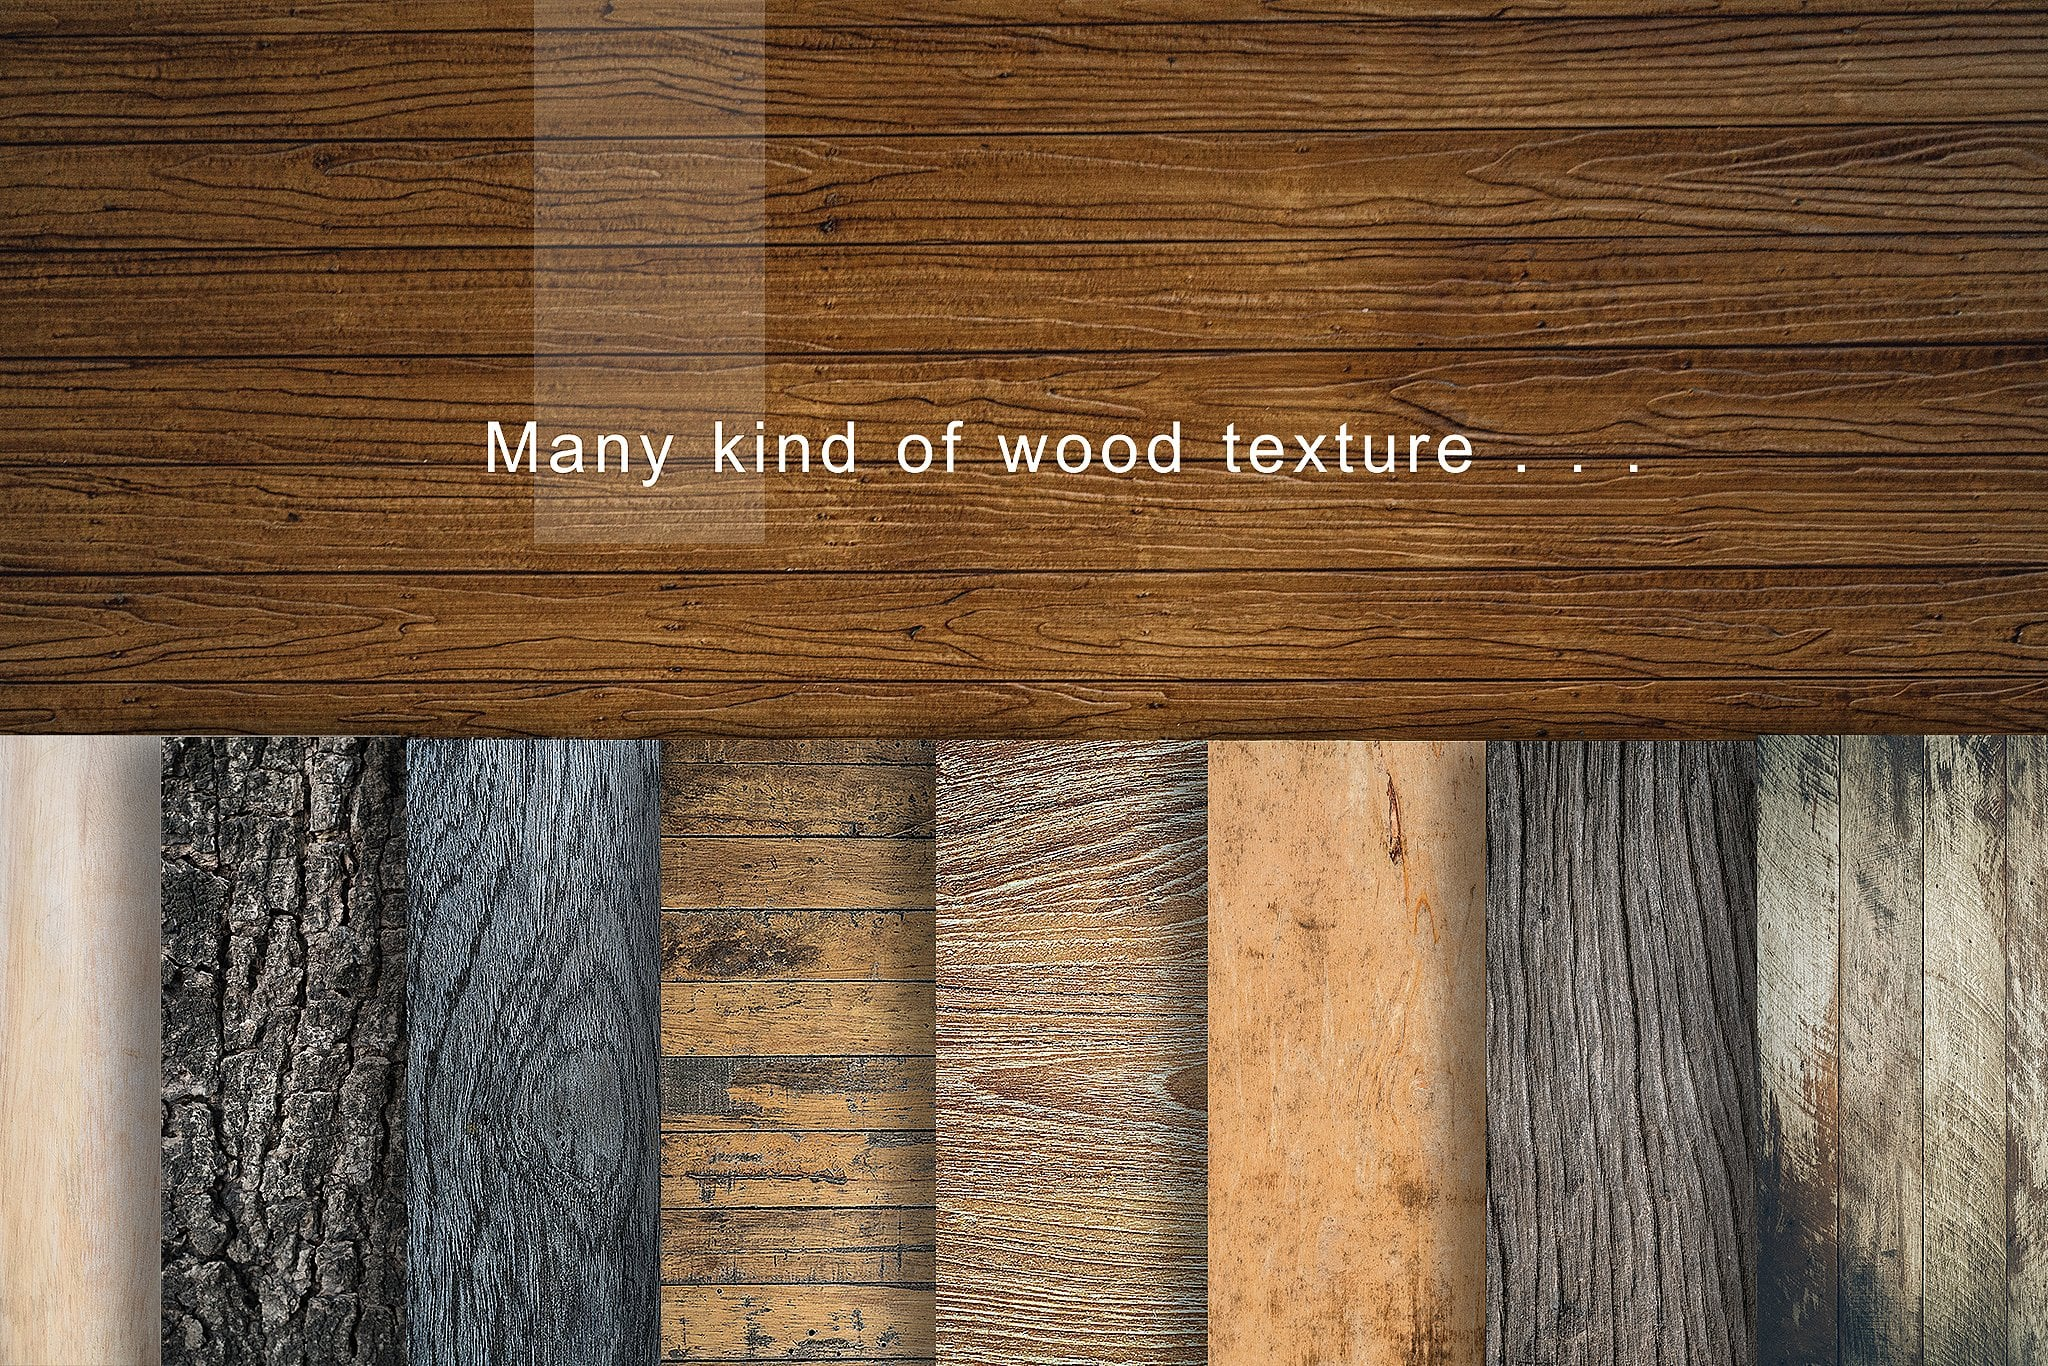 190+ Natural Wood Texture - woodsre